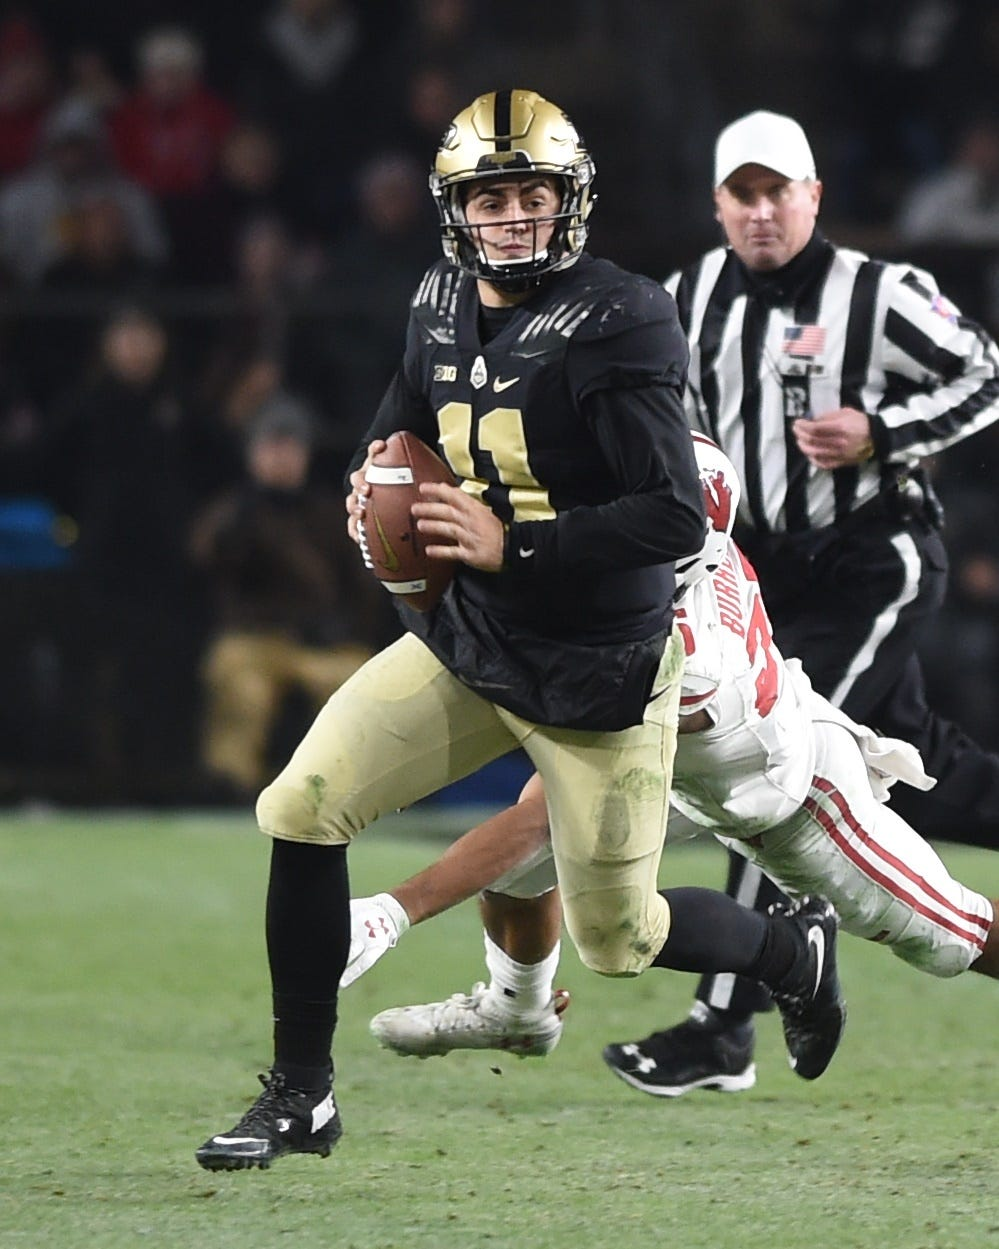 Scenes from senior day at Ross-Ade Stadiuim as the Boilers drop a heart breaker to Wisconsin in three OTs. David Blough